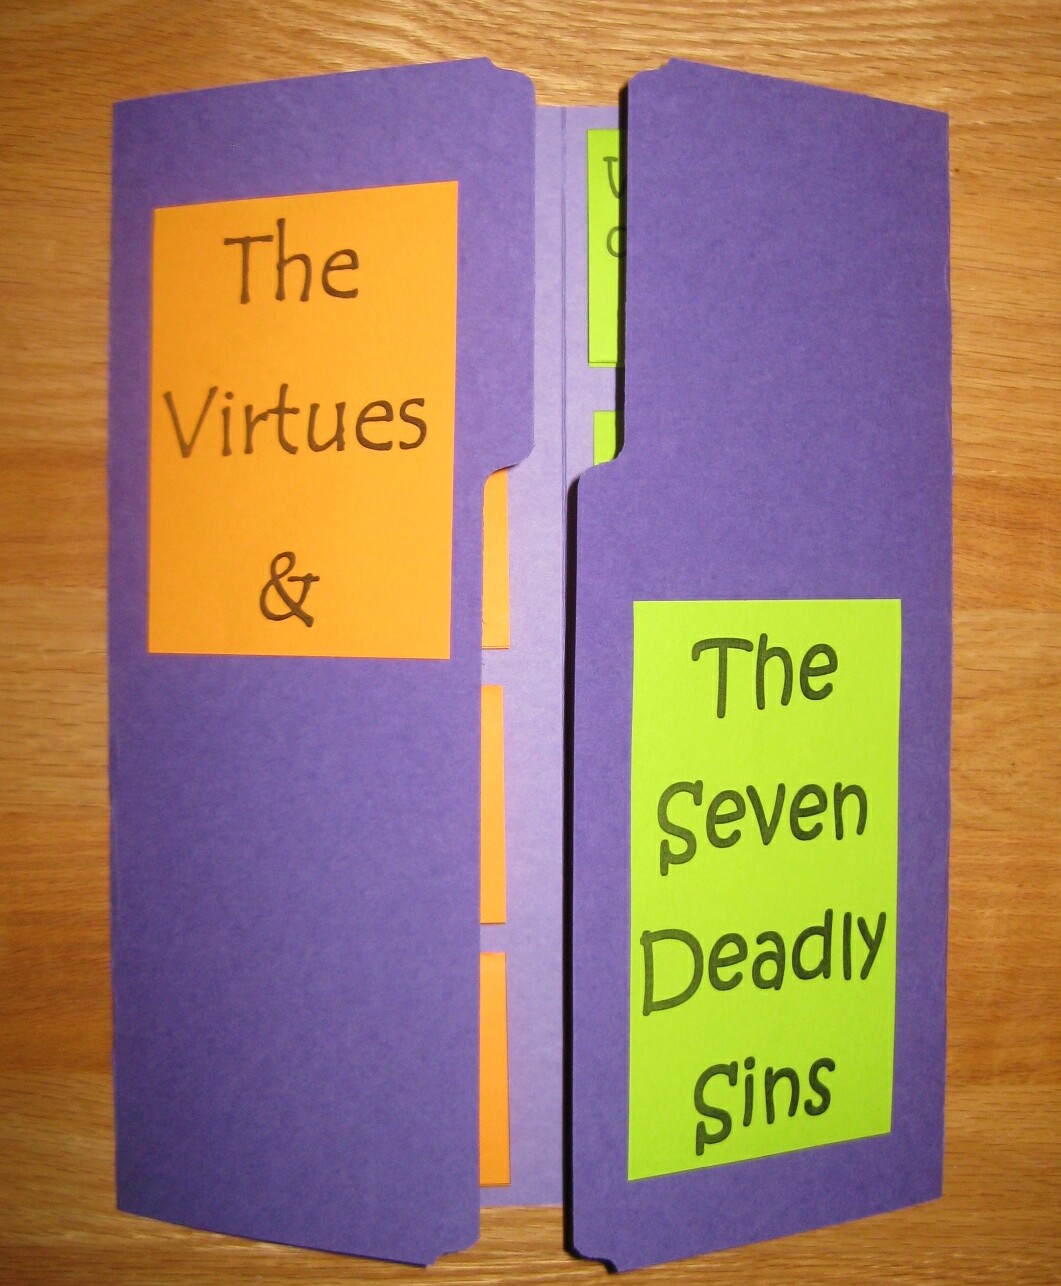 The Virtues Amp The 7 Deadly Sins